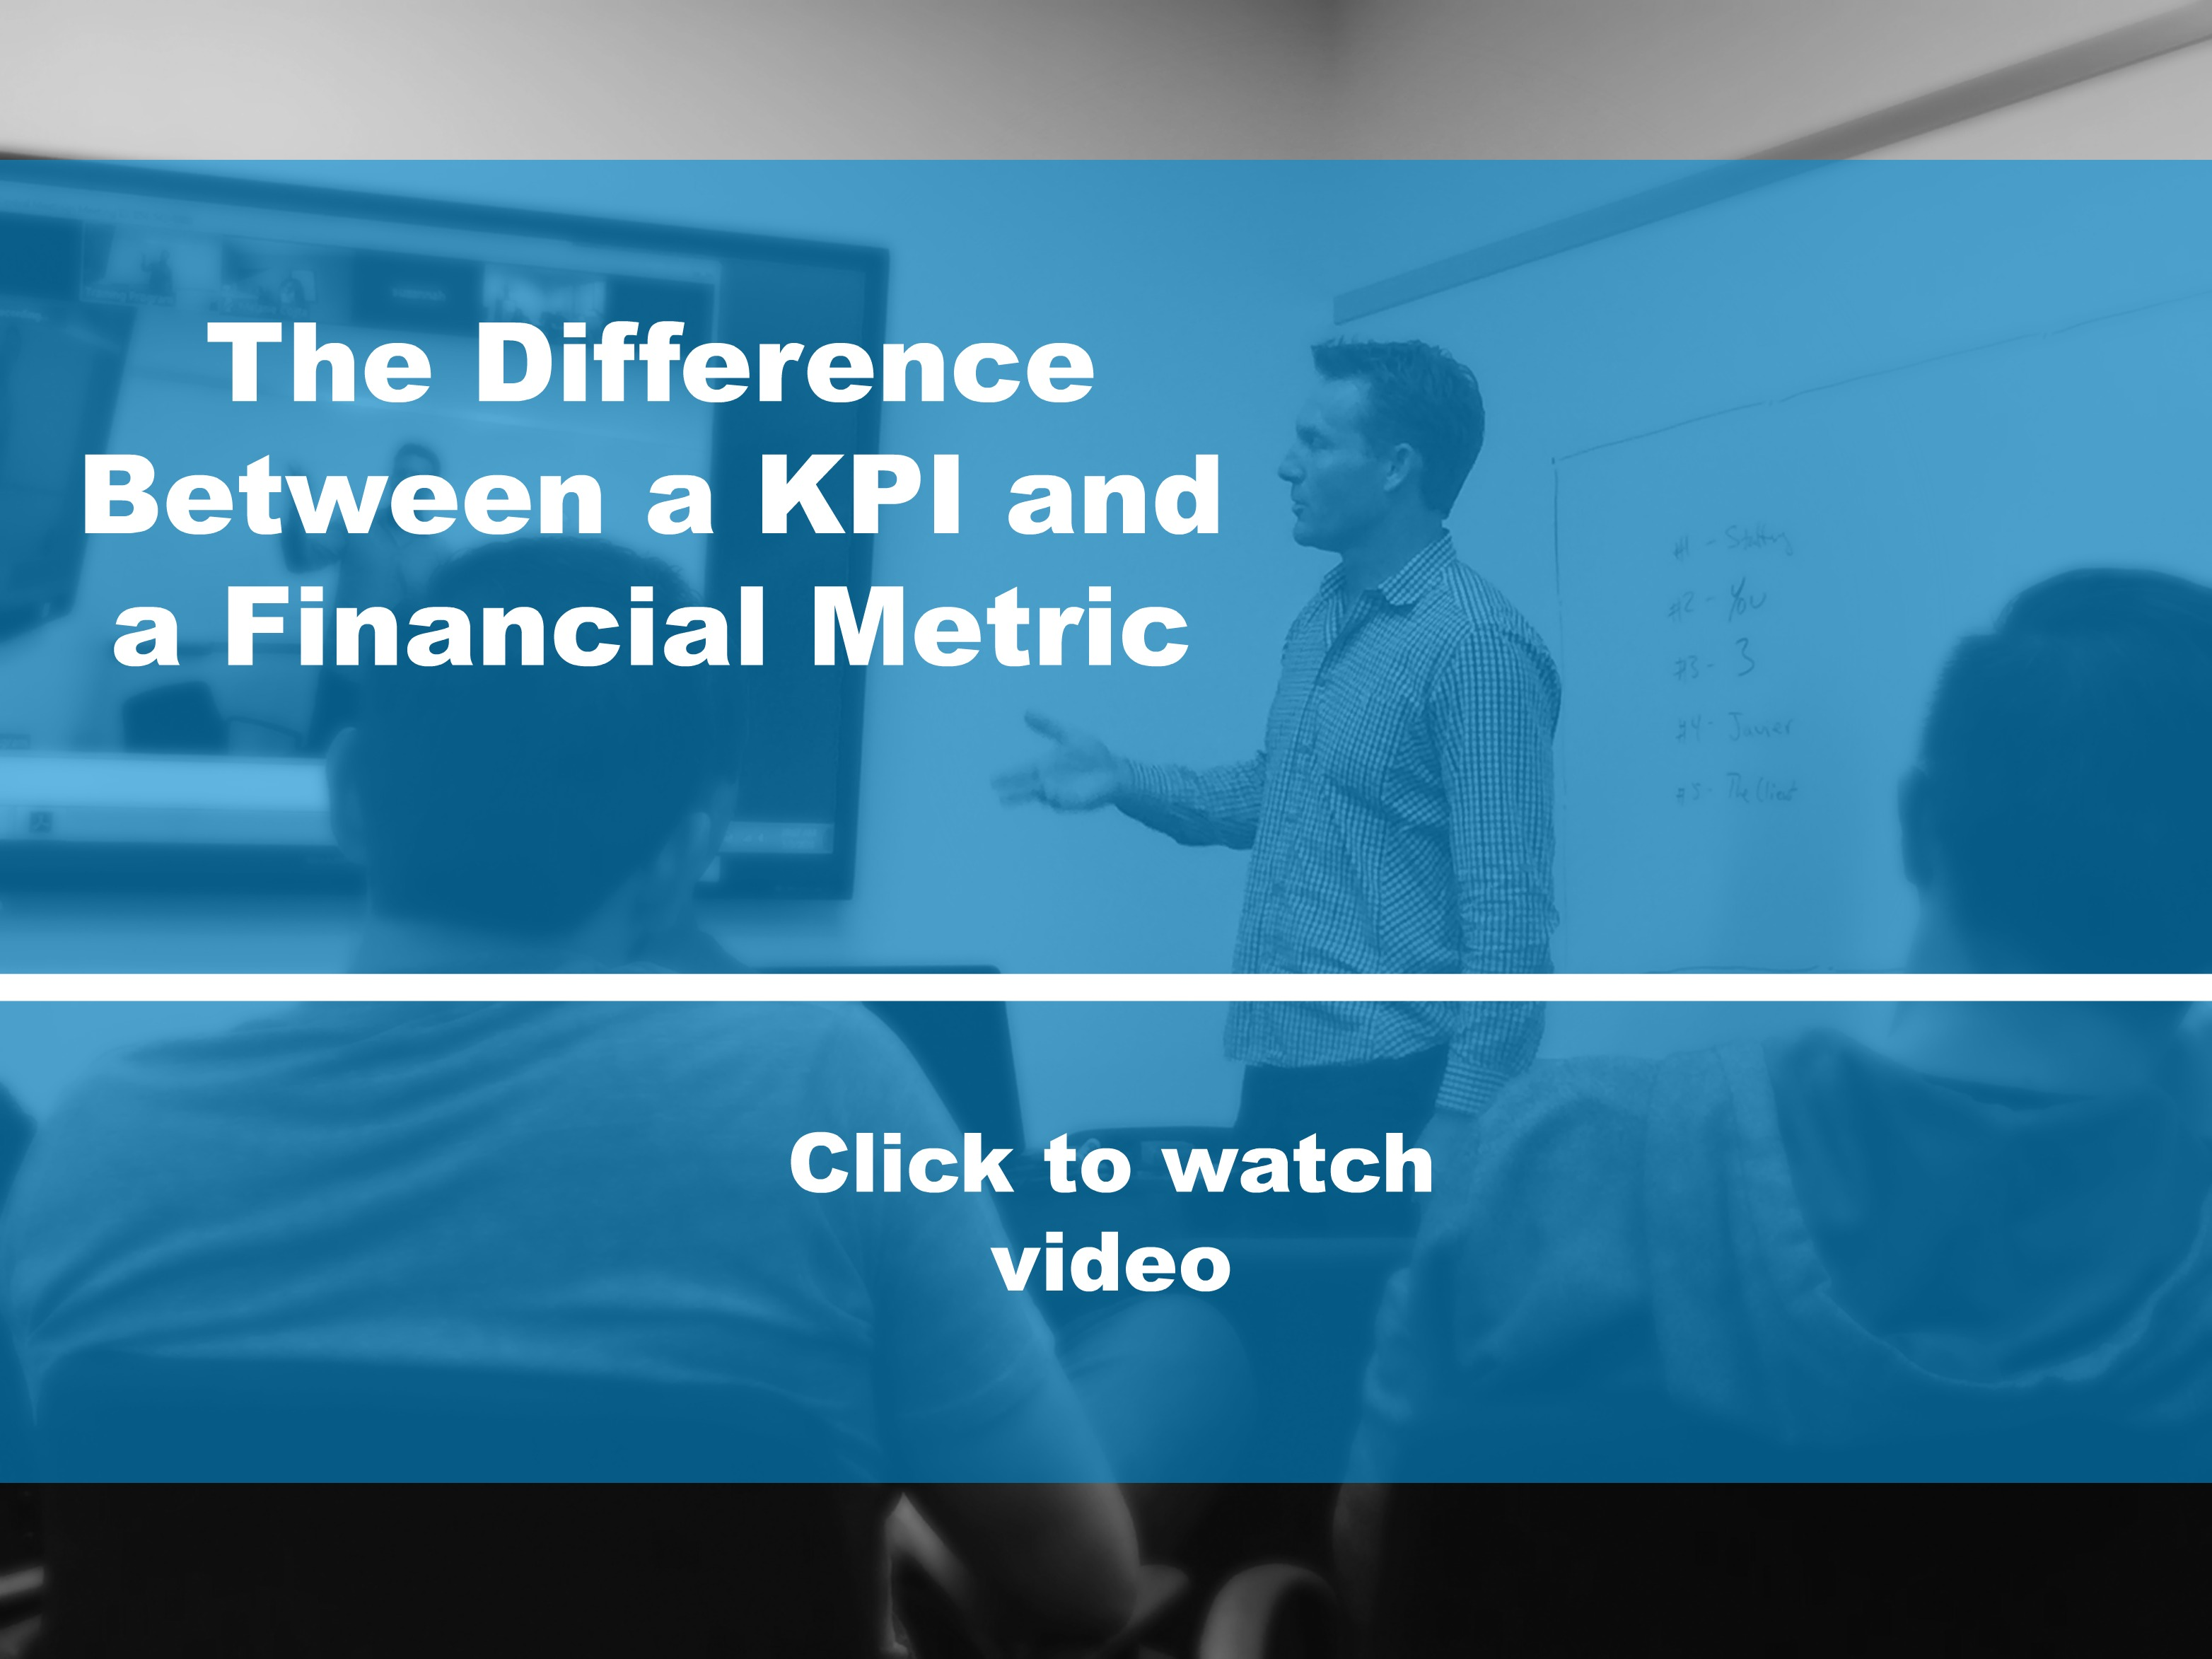 The Difference Between a KPI and a Financial Metric